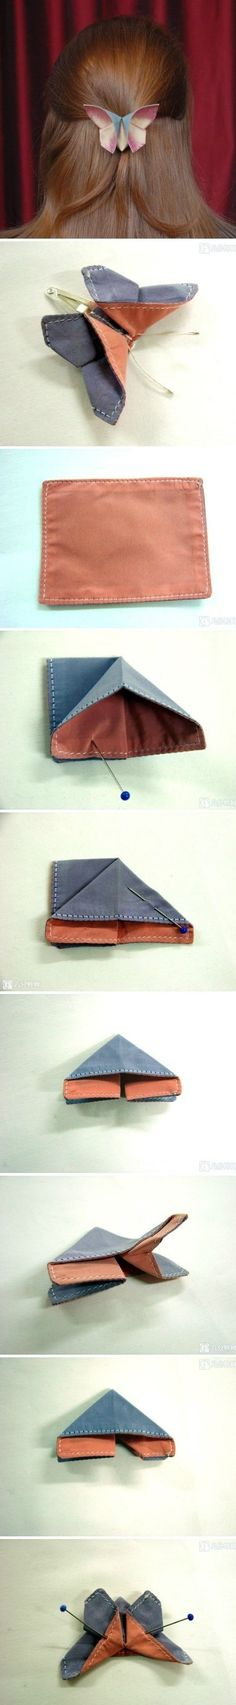 I never thought to use origami this way.  There are so many things you could do!